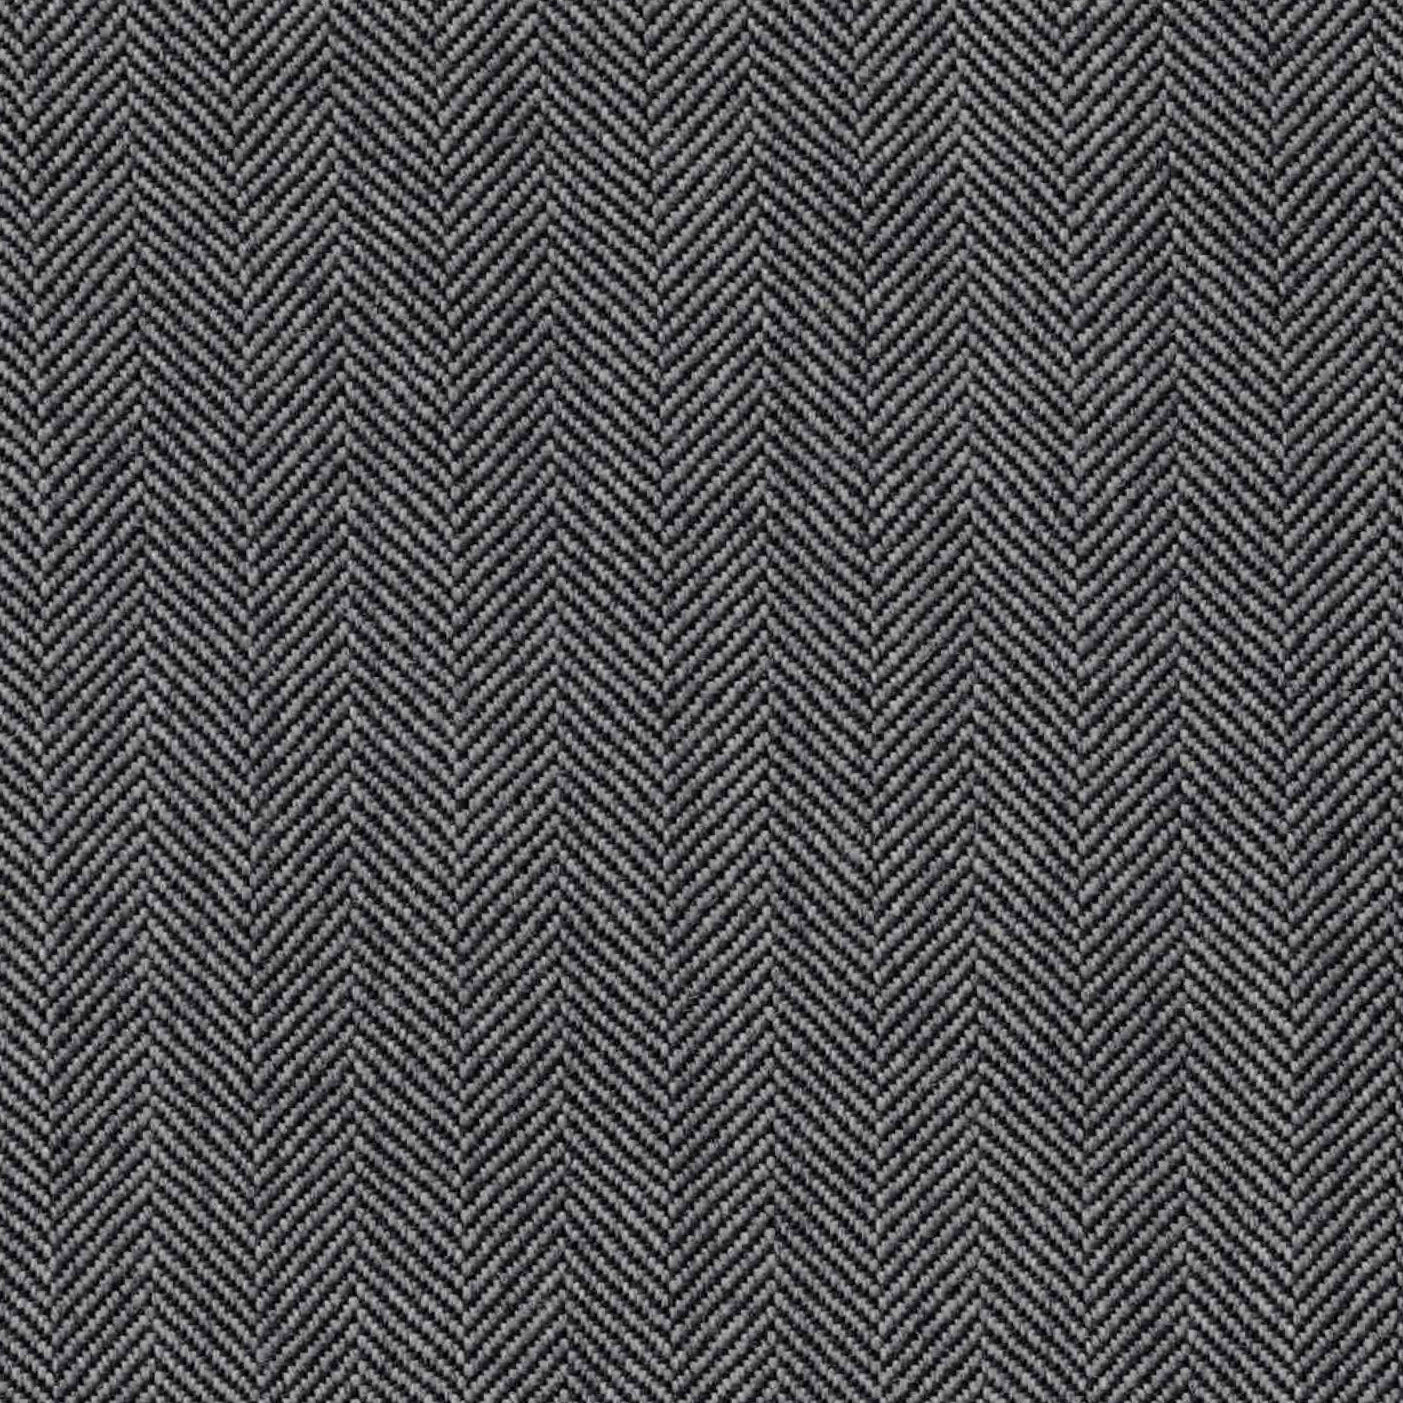 SC0007 - L.GREY HERRINGBONE - B